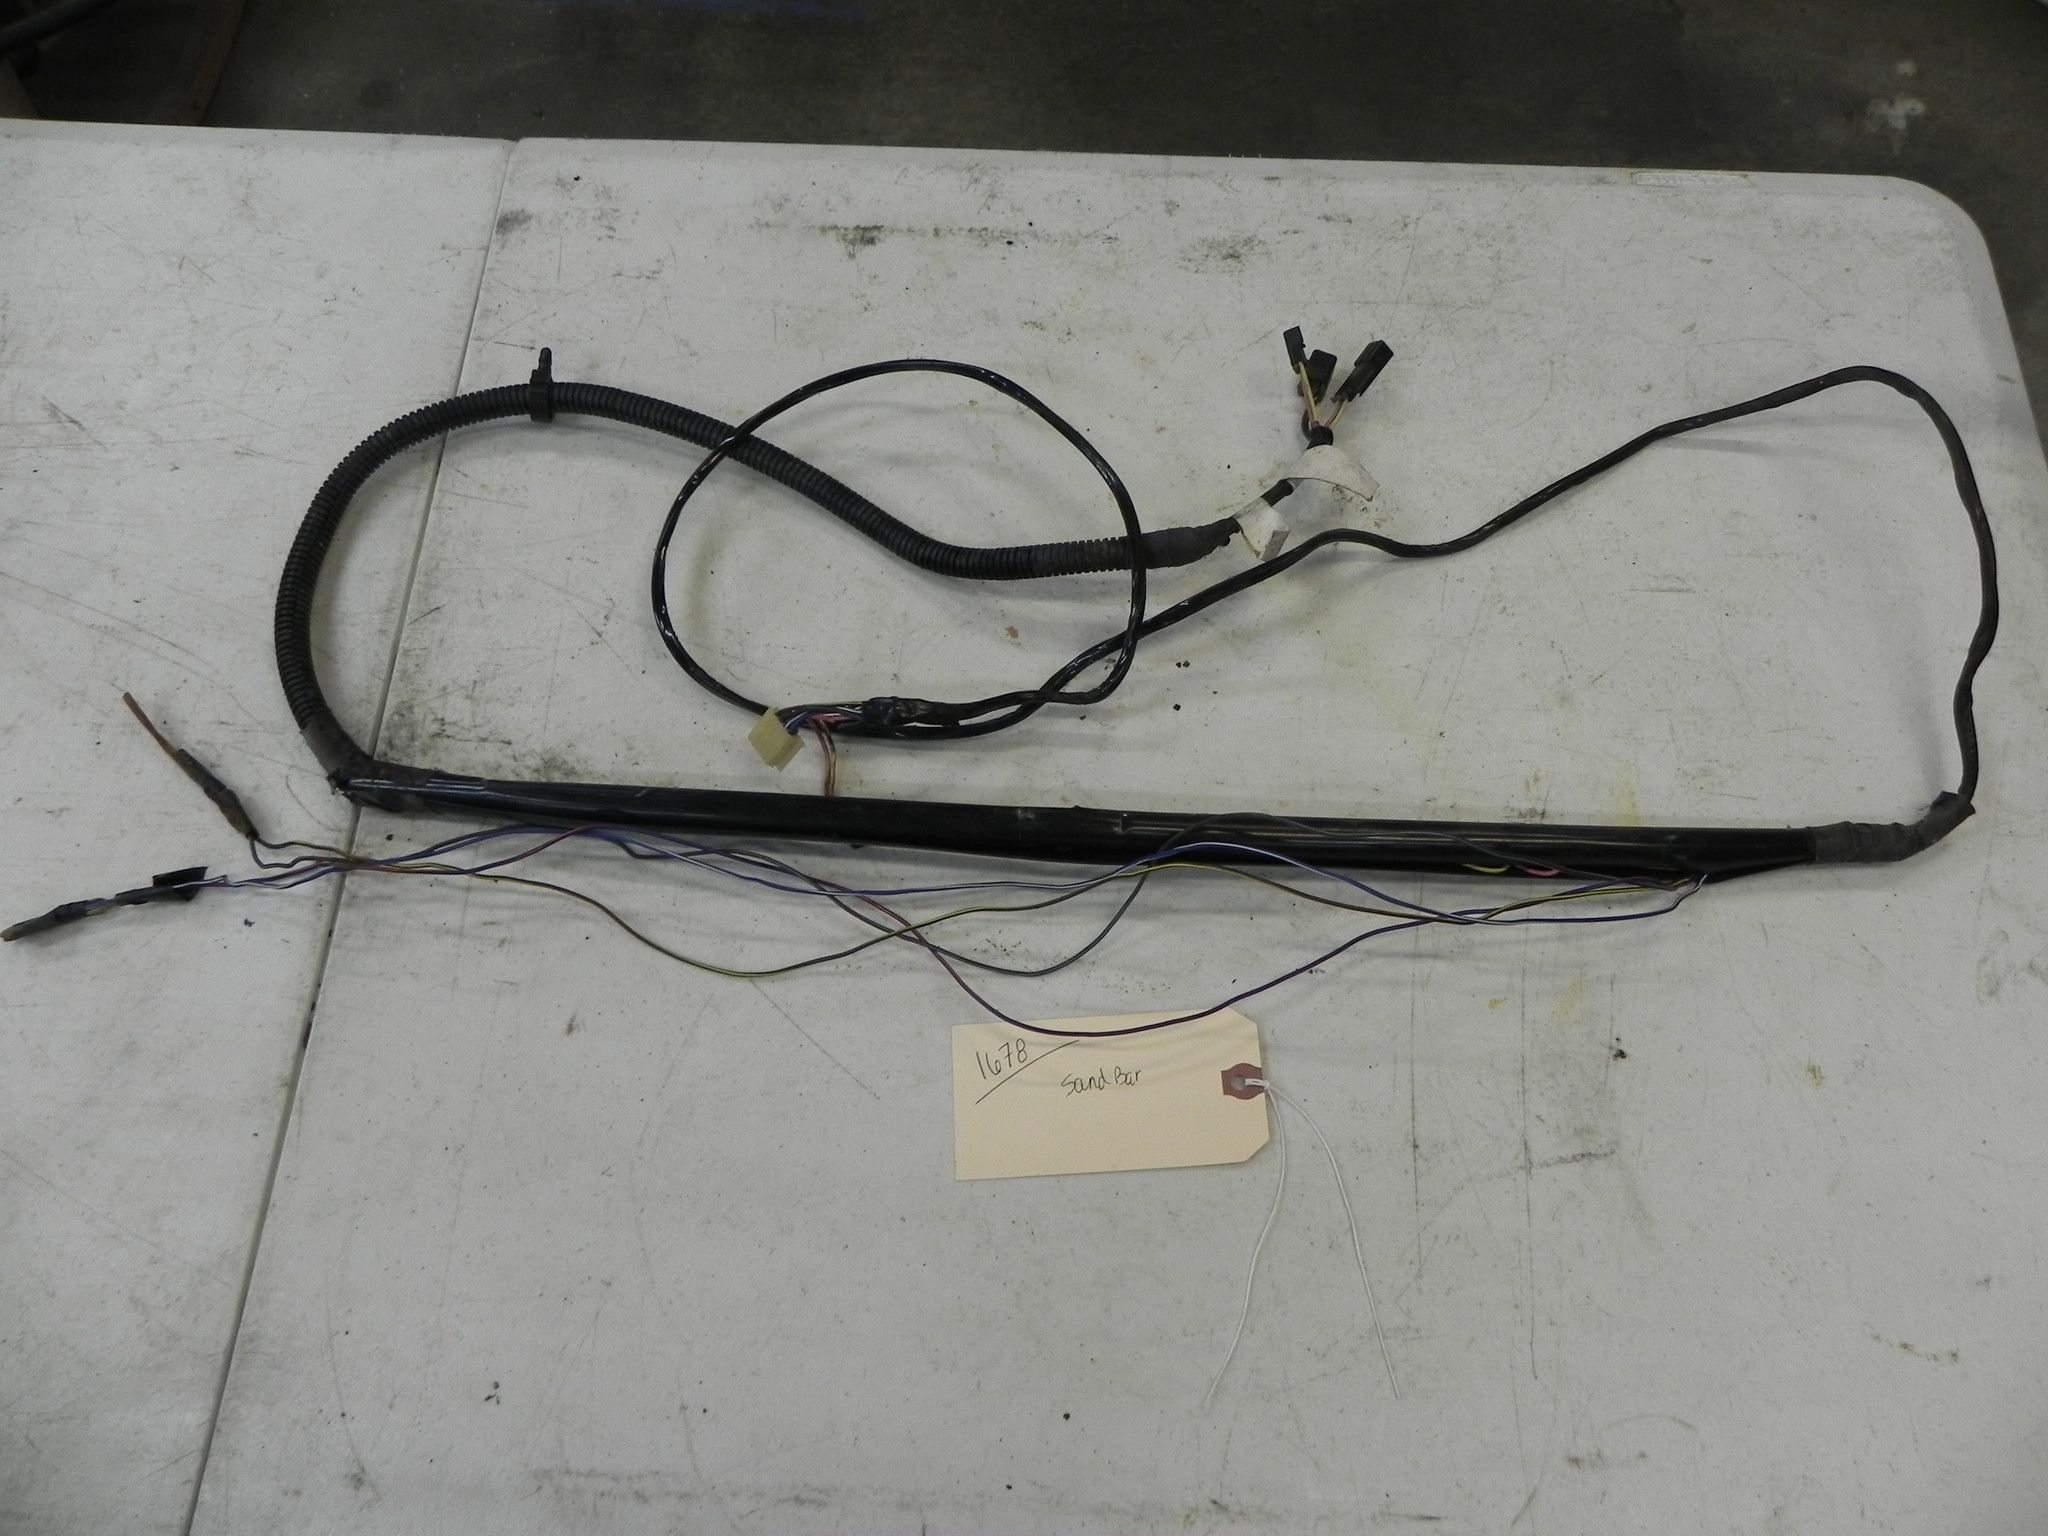 Jeep Wrangler YJ Sound Bar Wiring Harness 9195 Products